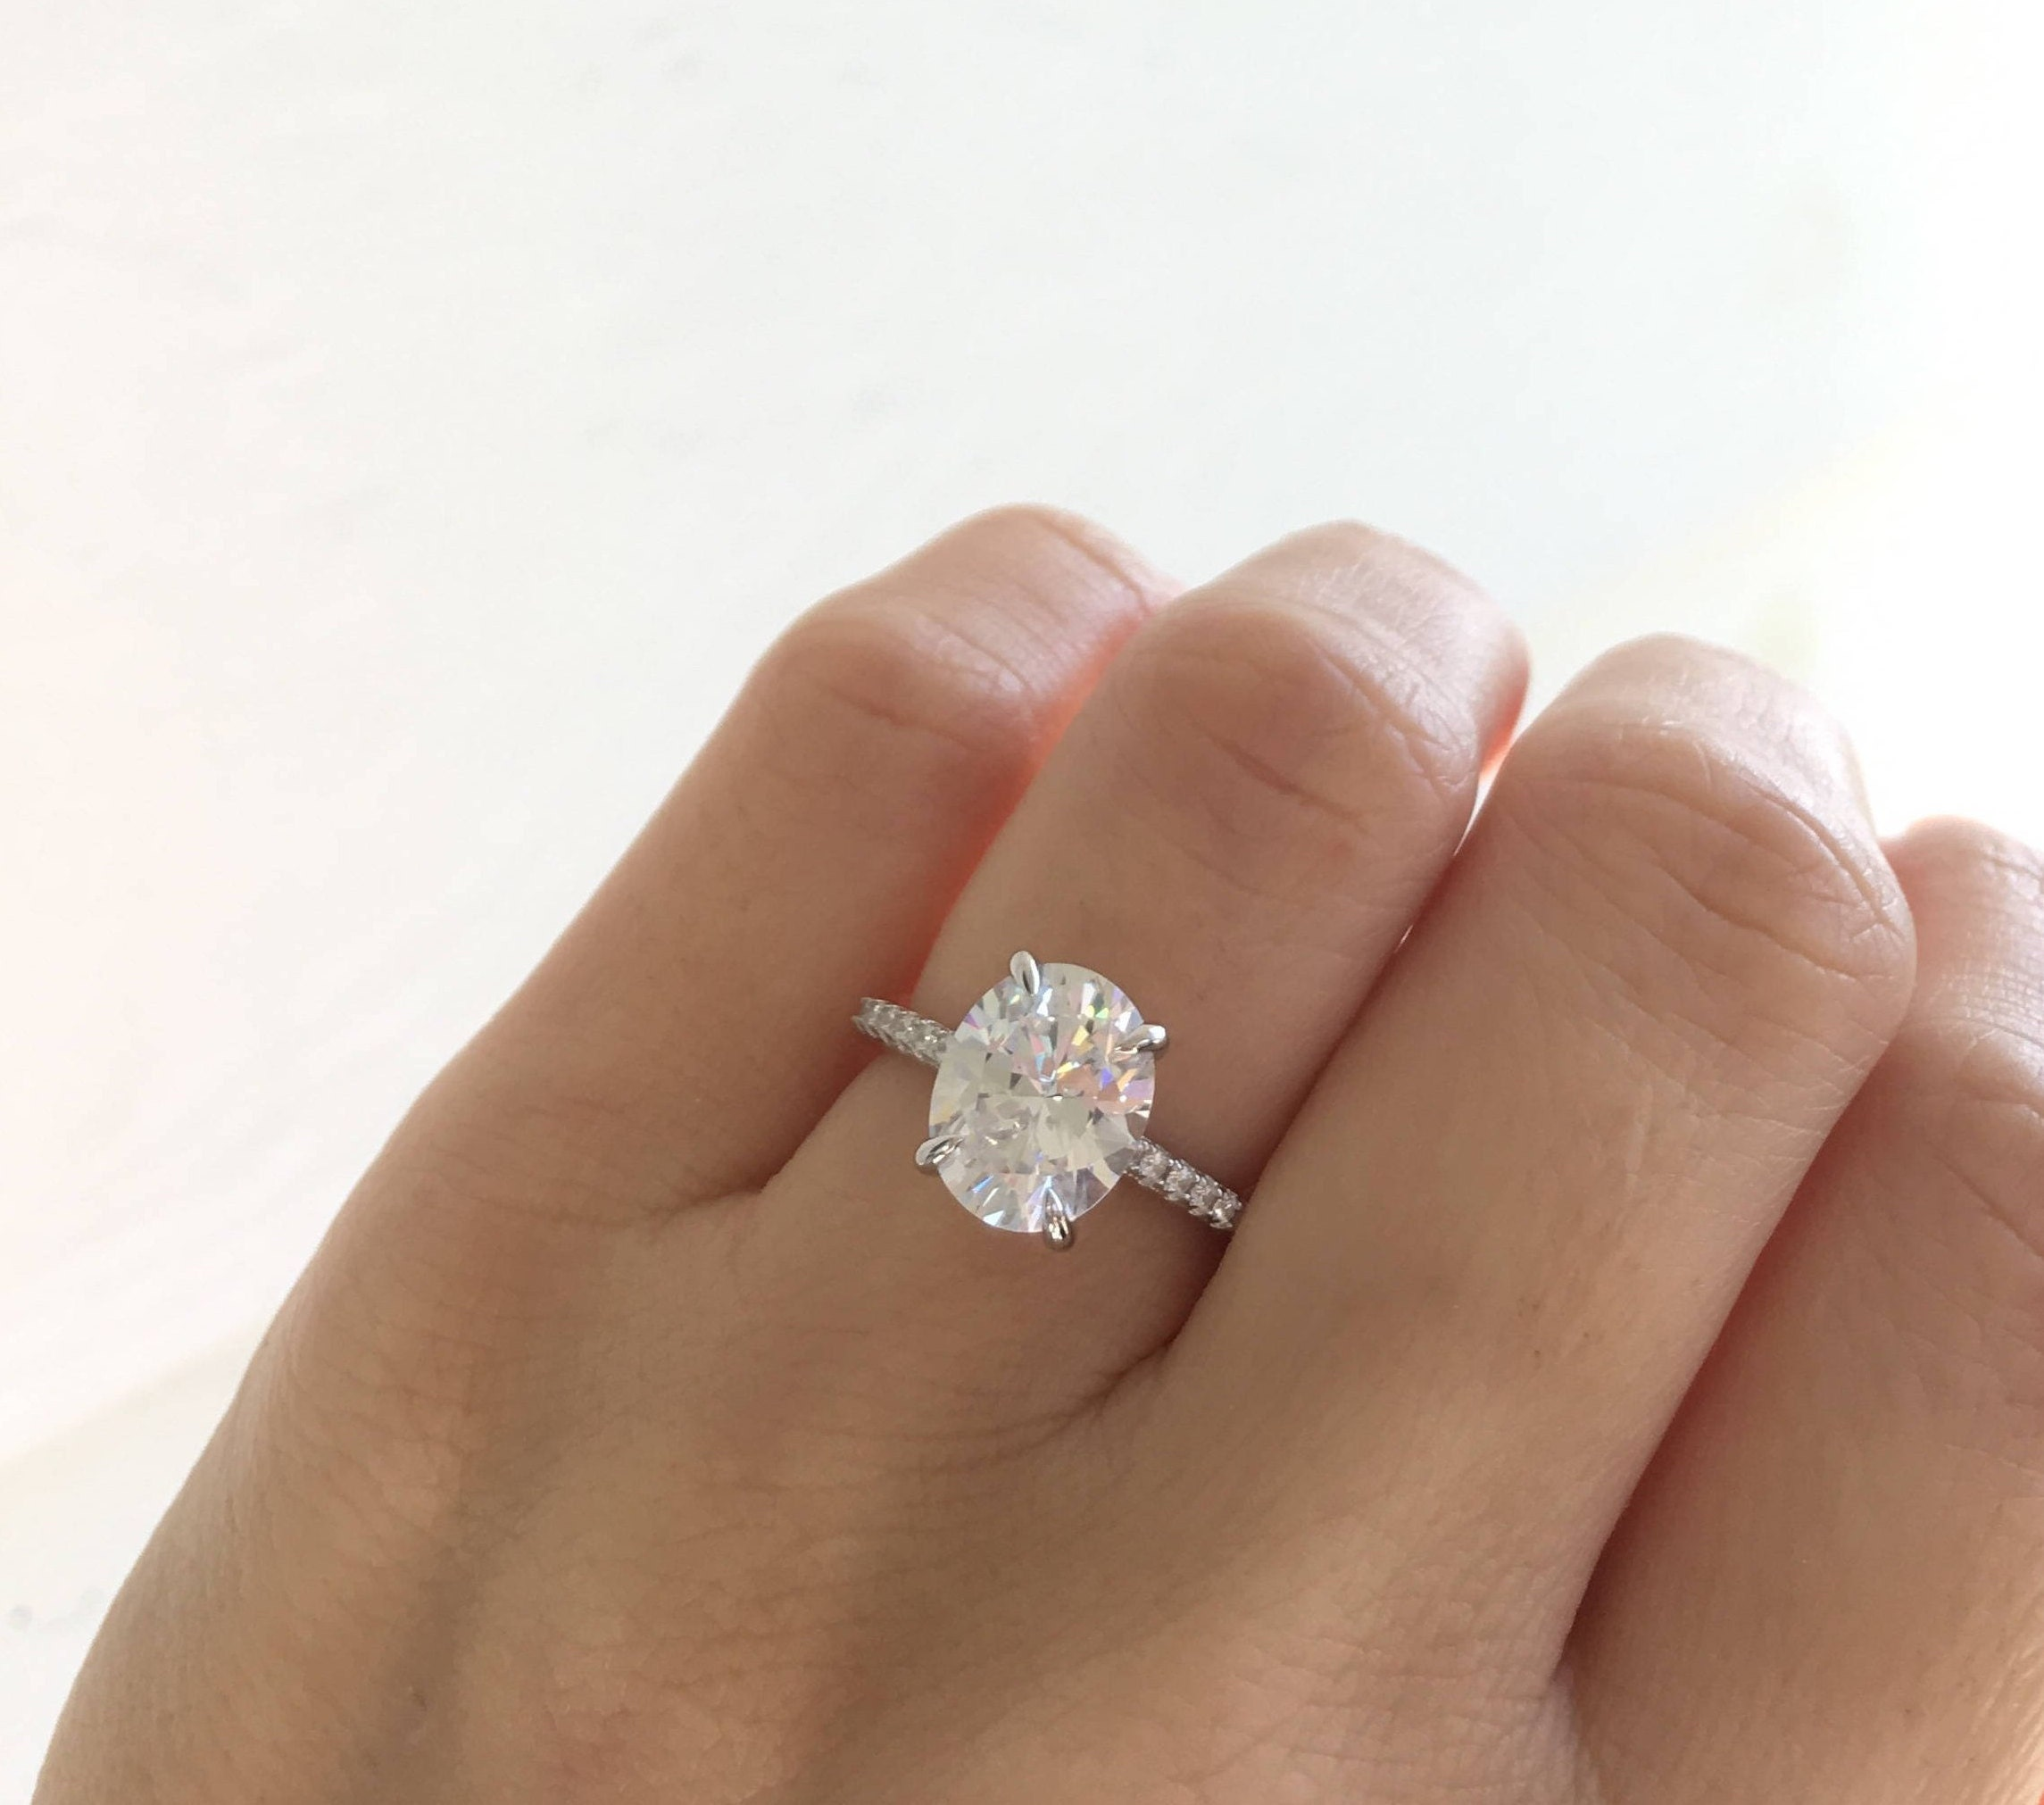 Oval Cut Engagement Ring. Sterling Silver Half Eternity